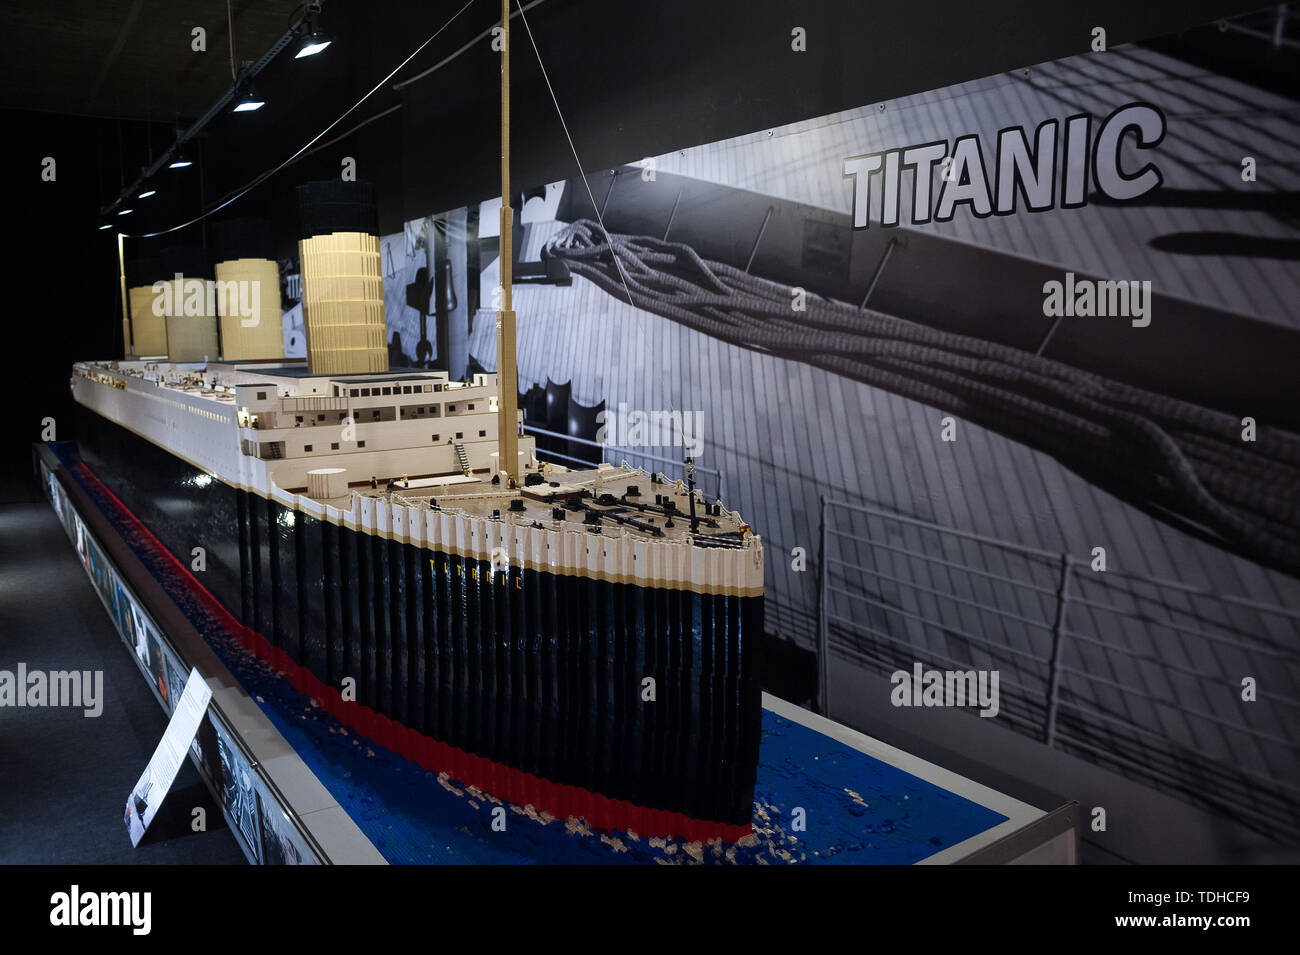 Malaga, Spain. 16th June, 2019. A large mockup of 'Titanic' ship displayed inside a glass cabinet during the exhibition. The LEGO exhibition is a temporary exhibition, the most biggest of Europe about figures of LEGO, showing different mockups mounted with more than 5 million of LEGO pieces to large scale such as Titanic ship, replicas of basketball players, the human body, characters of the film Star Wars, MARVEL and others. Credit: SOPA Images Limited/Alamy Live News Stock Photo